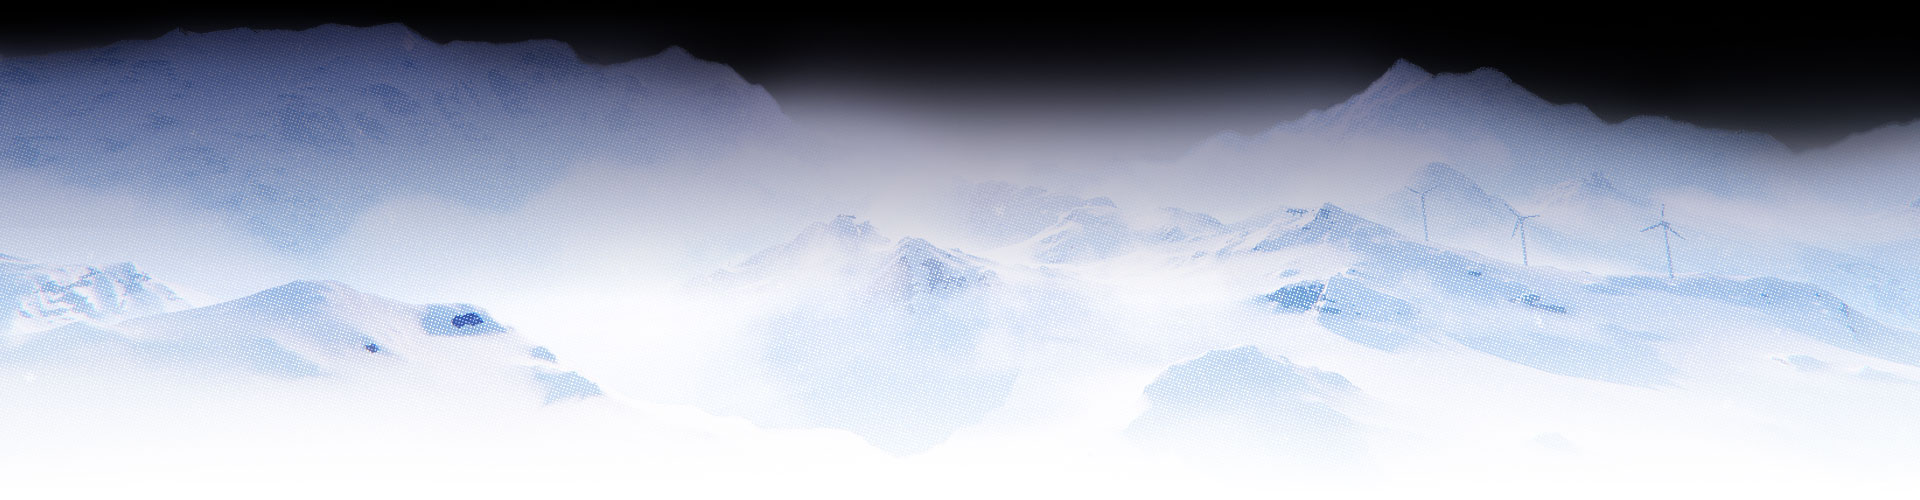 Snowy mountains shrouded in darkness